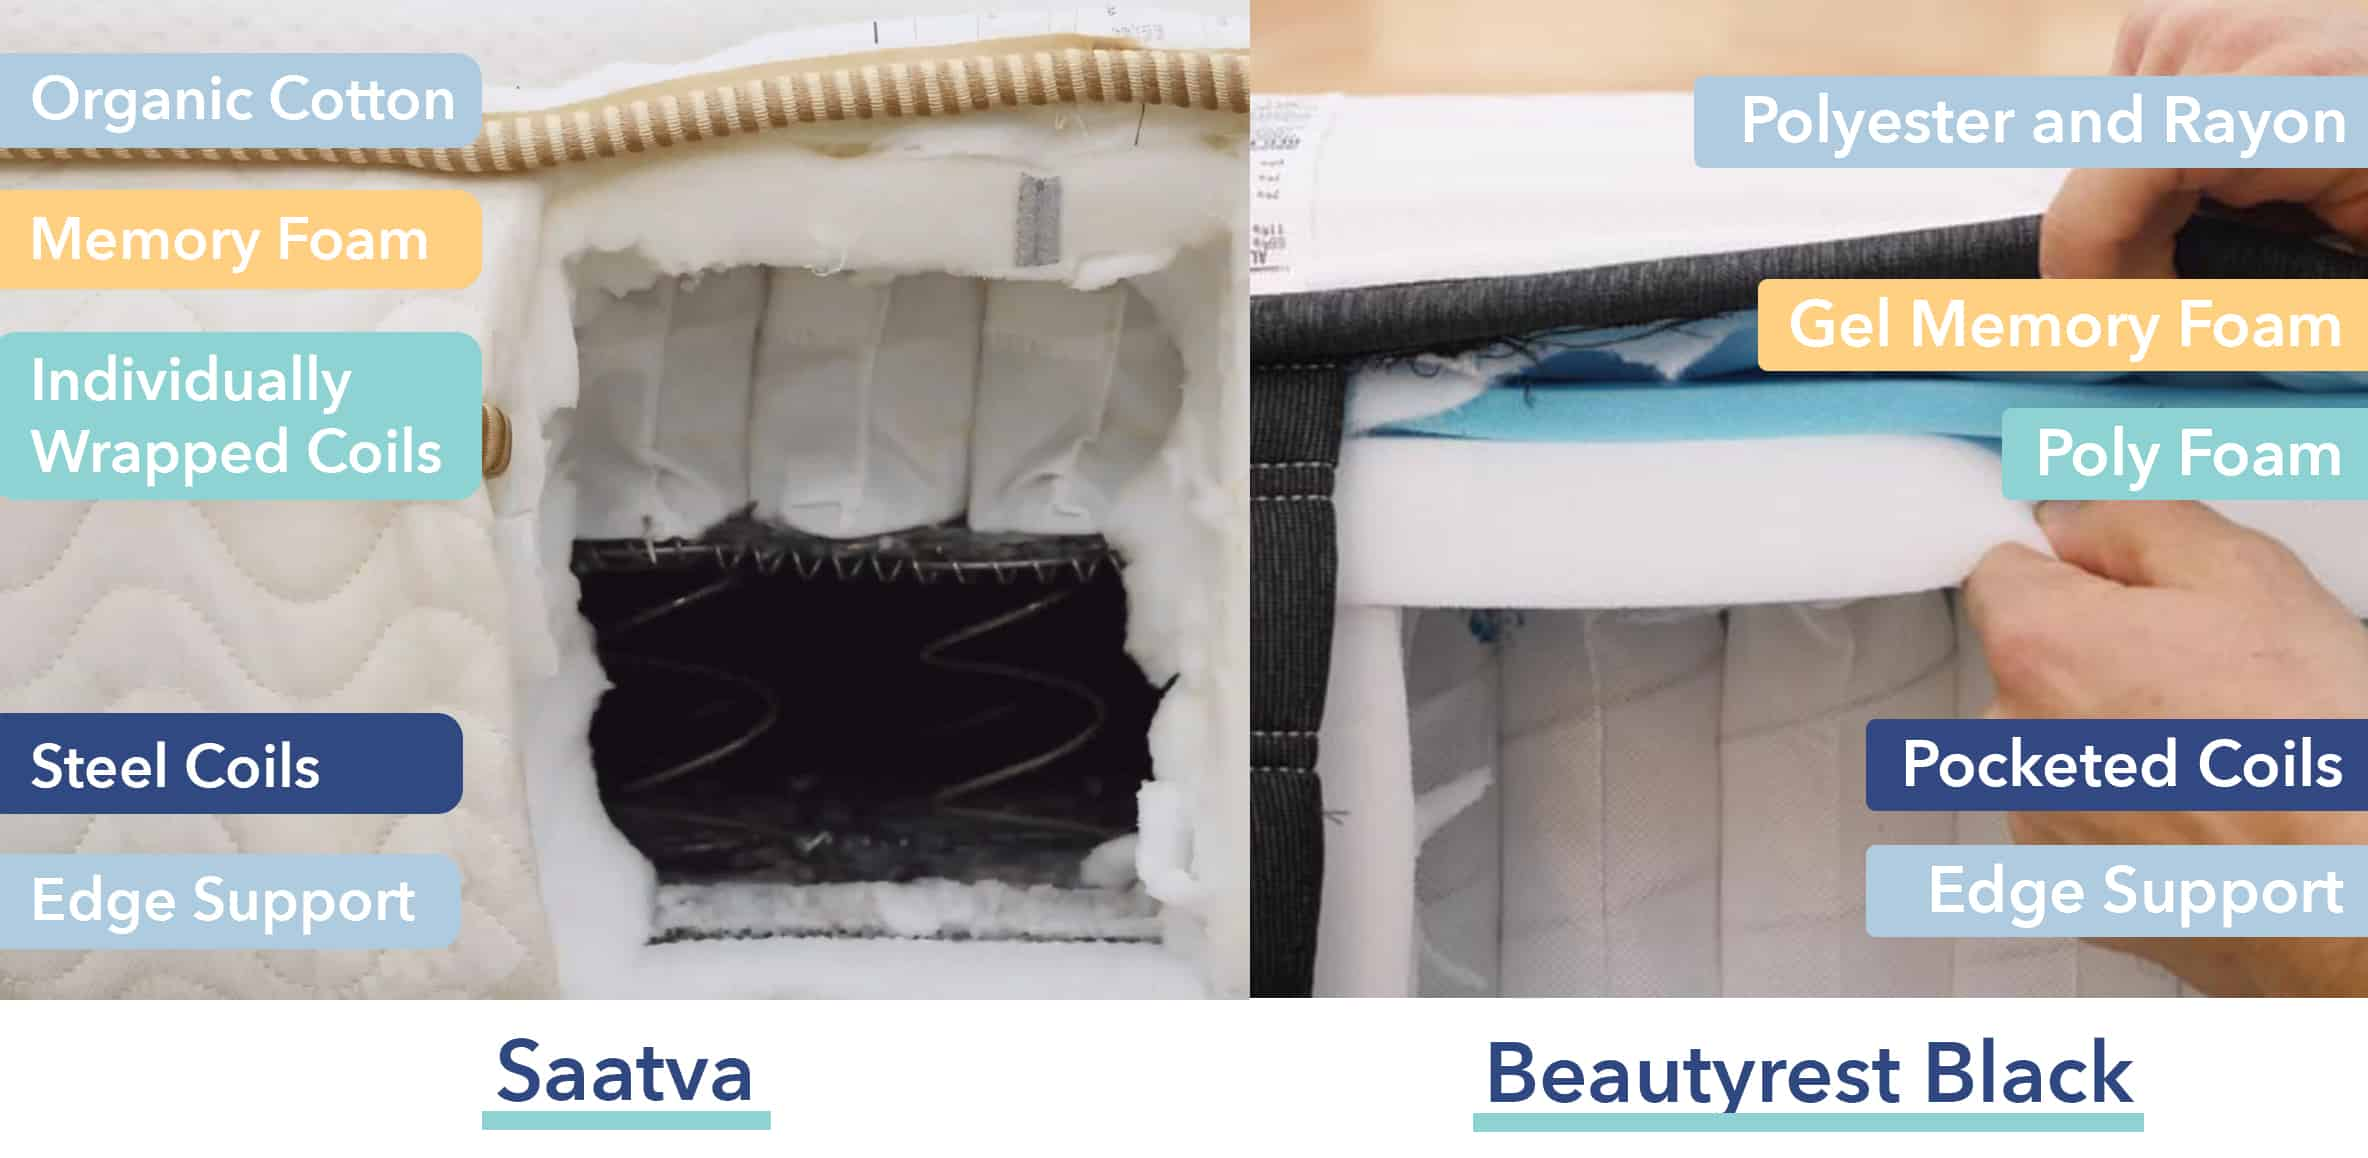 Saatva vs Beautyrest Black Materials